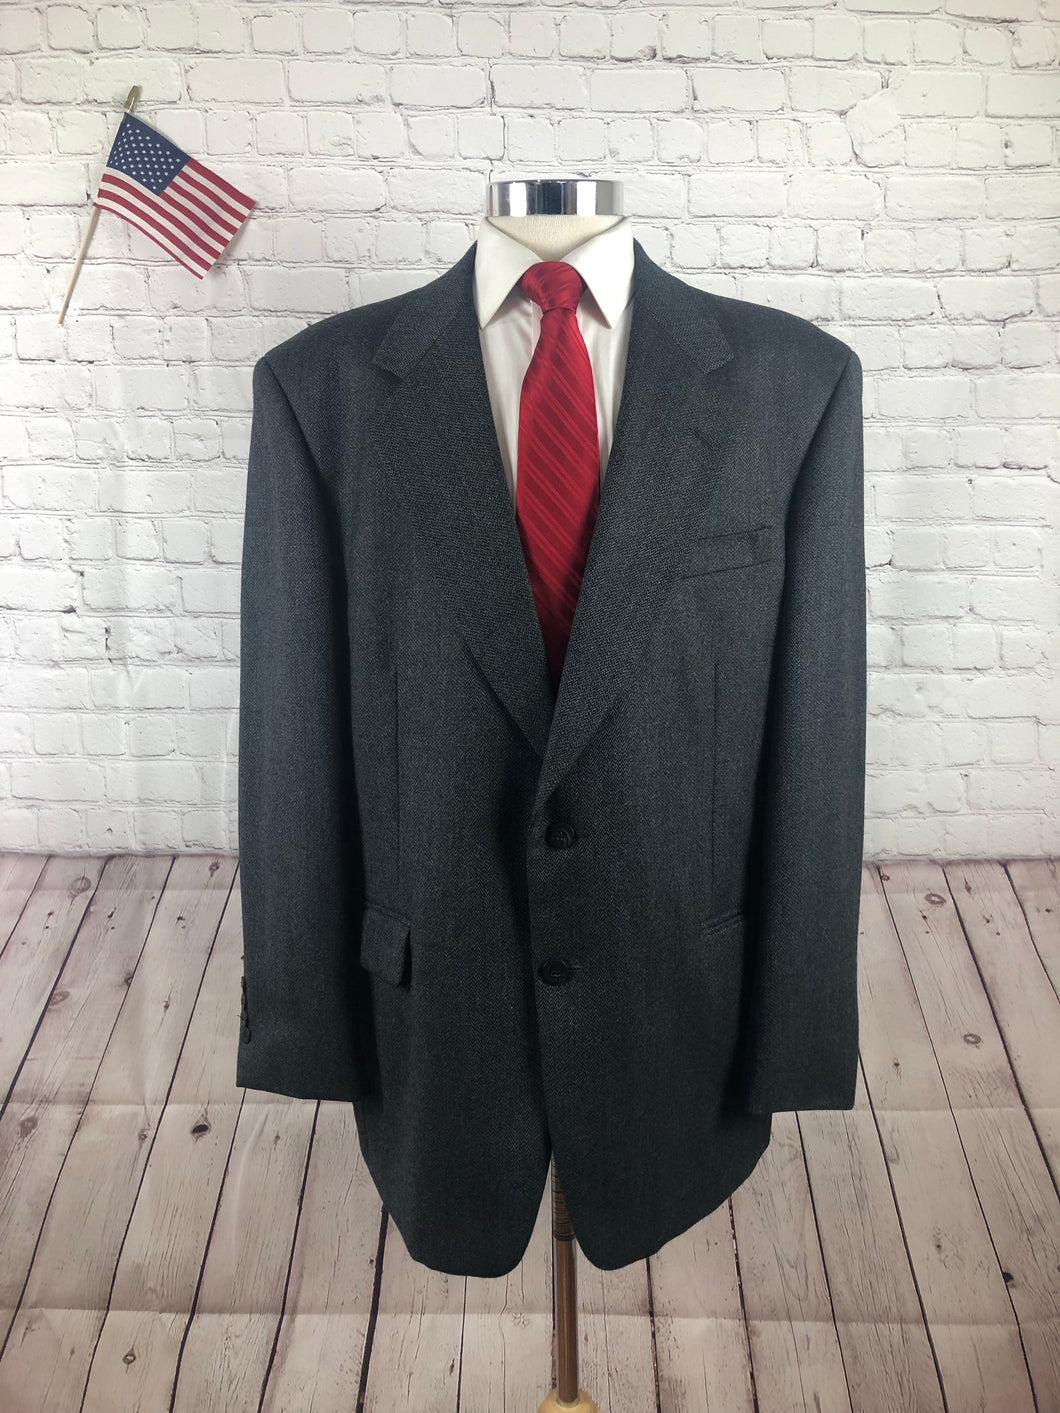 Jones New York Men's Gray Heringbone Two Button Wool Blazer Sport Coat Suit Jacket 44R $349 - SUIT CHARITY OUTLET